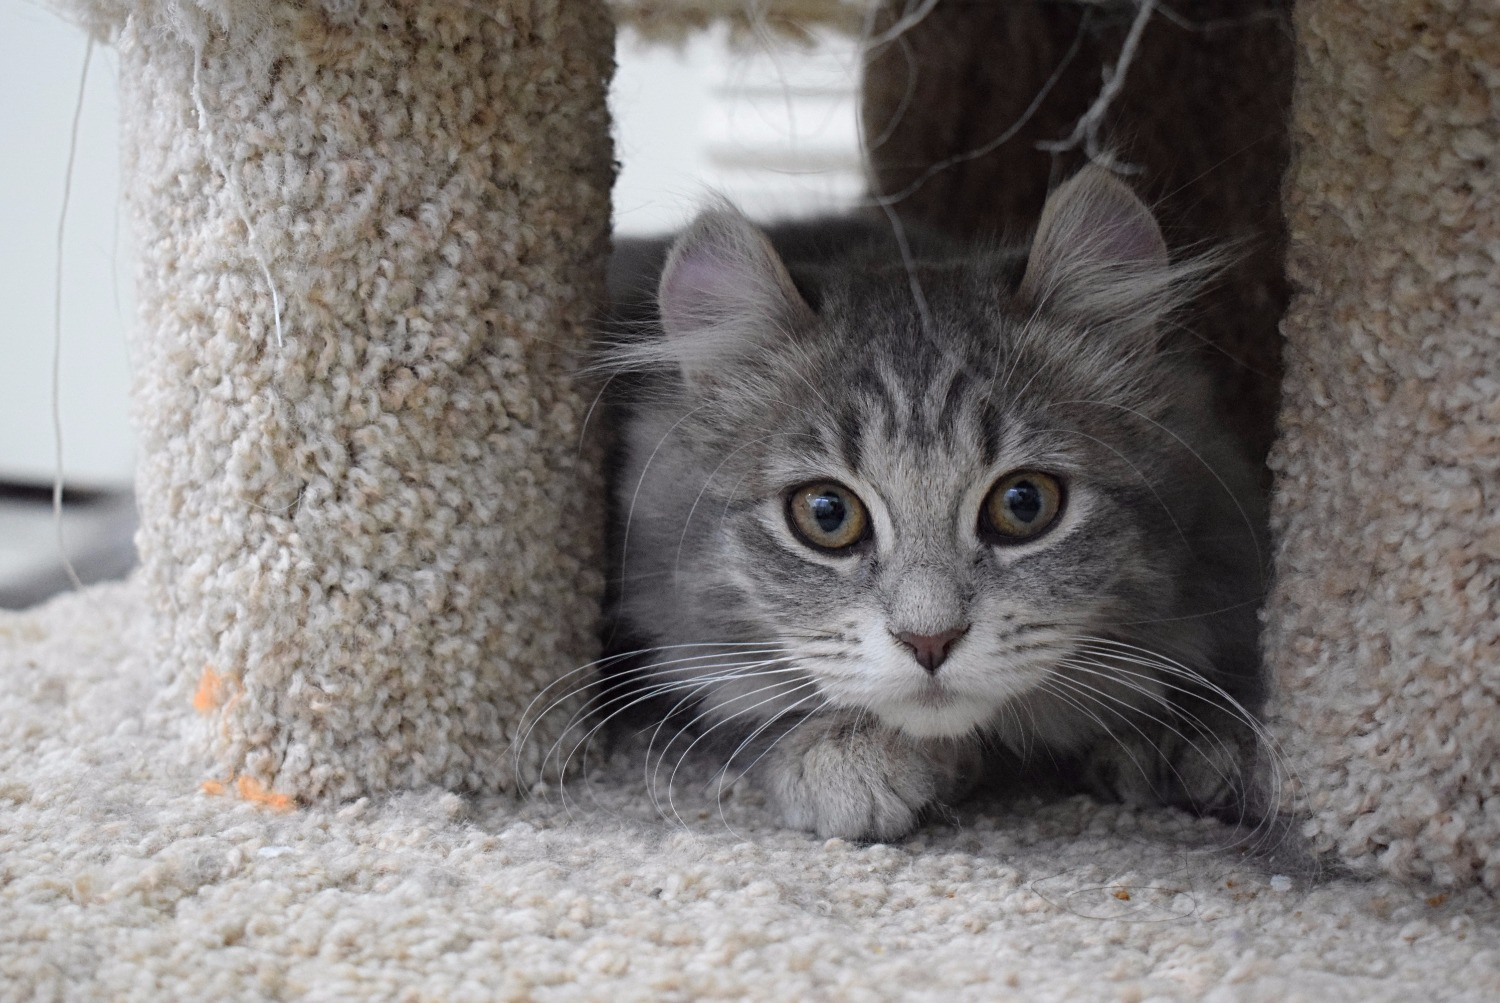 Ready to Pounce!